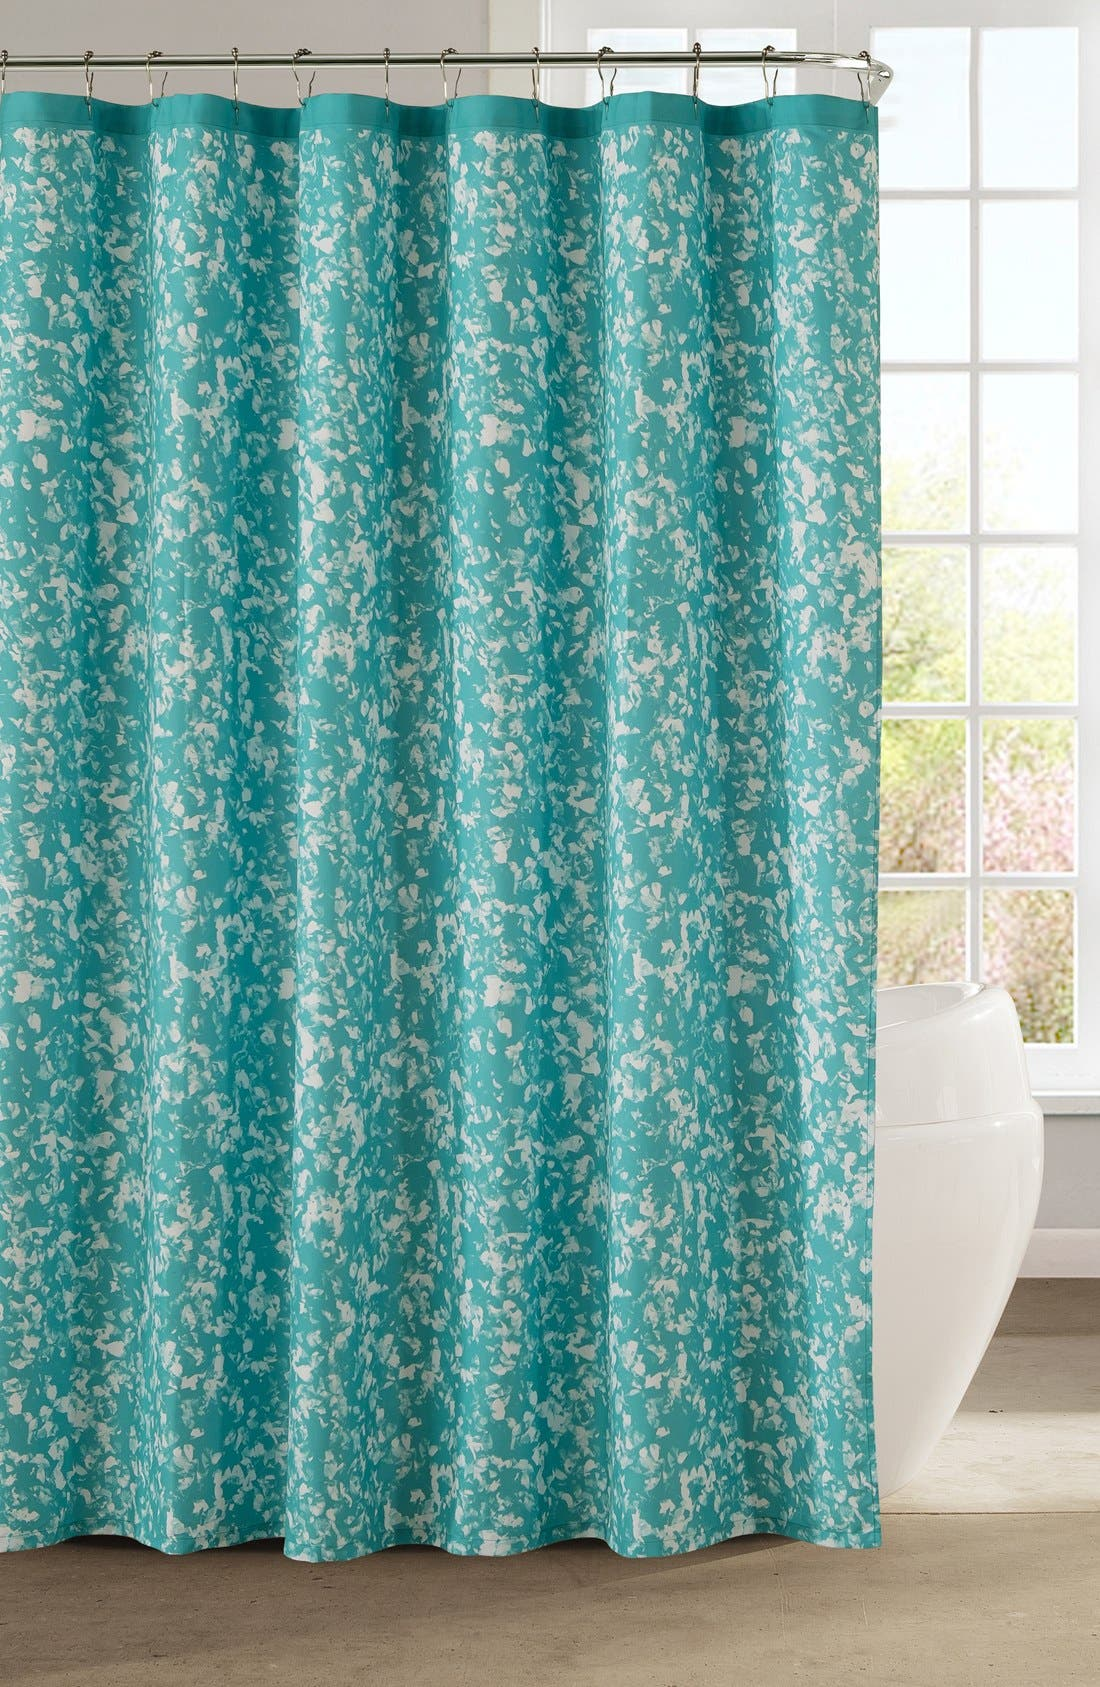 'Susie' Shower Curtain,                         Main,                         color, 448